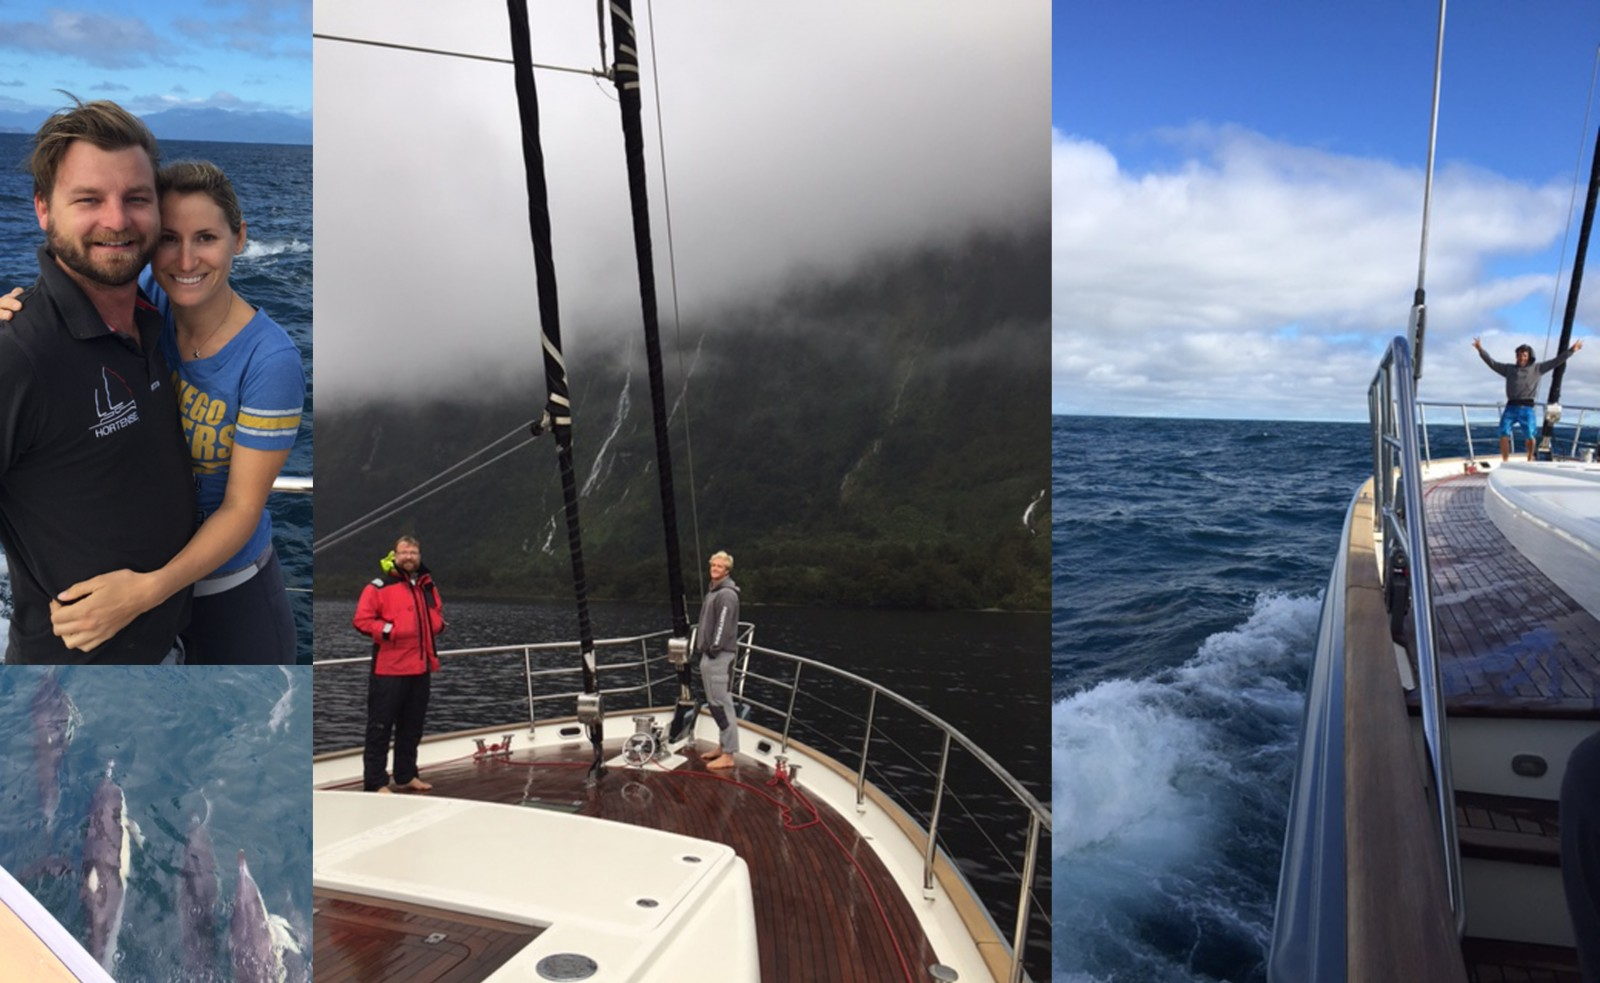 News from S/Y Hortense.